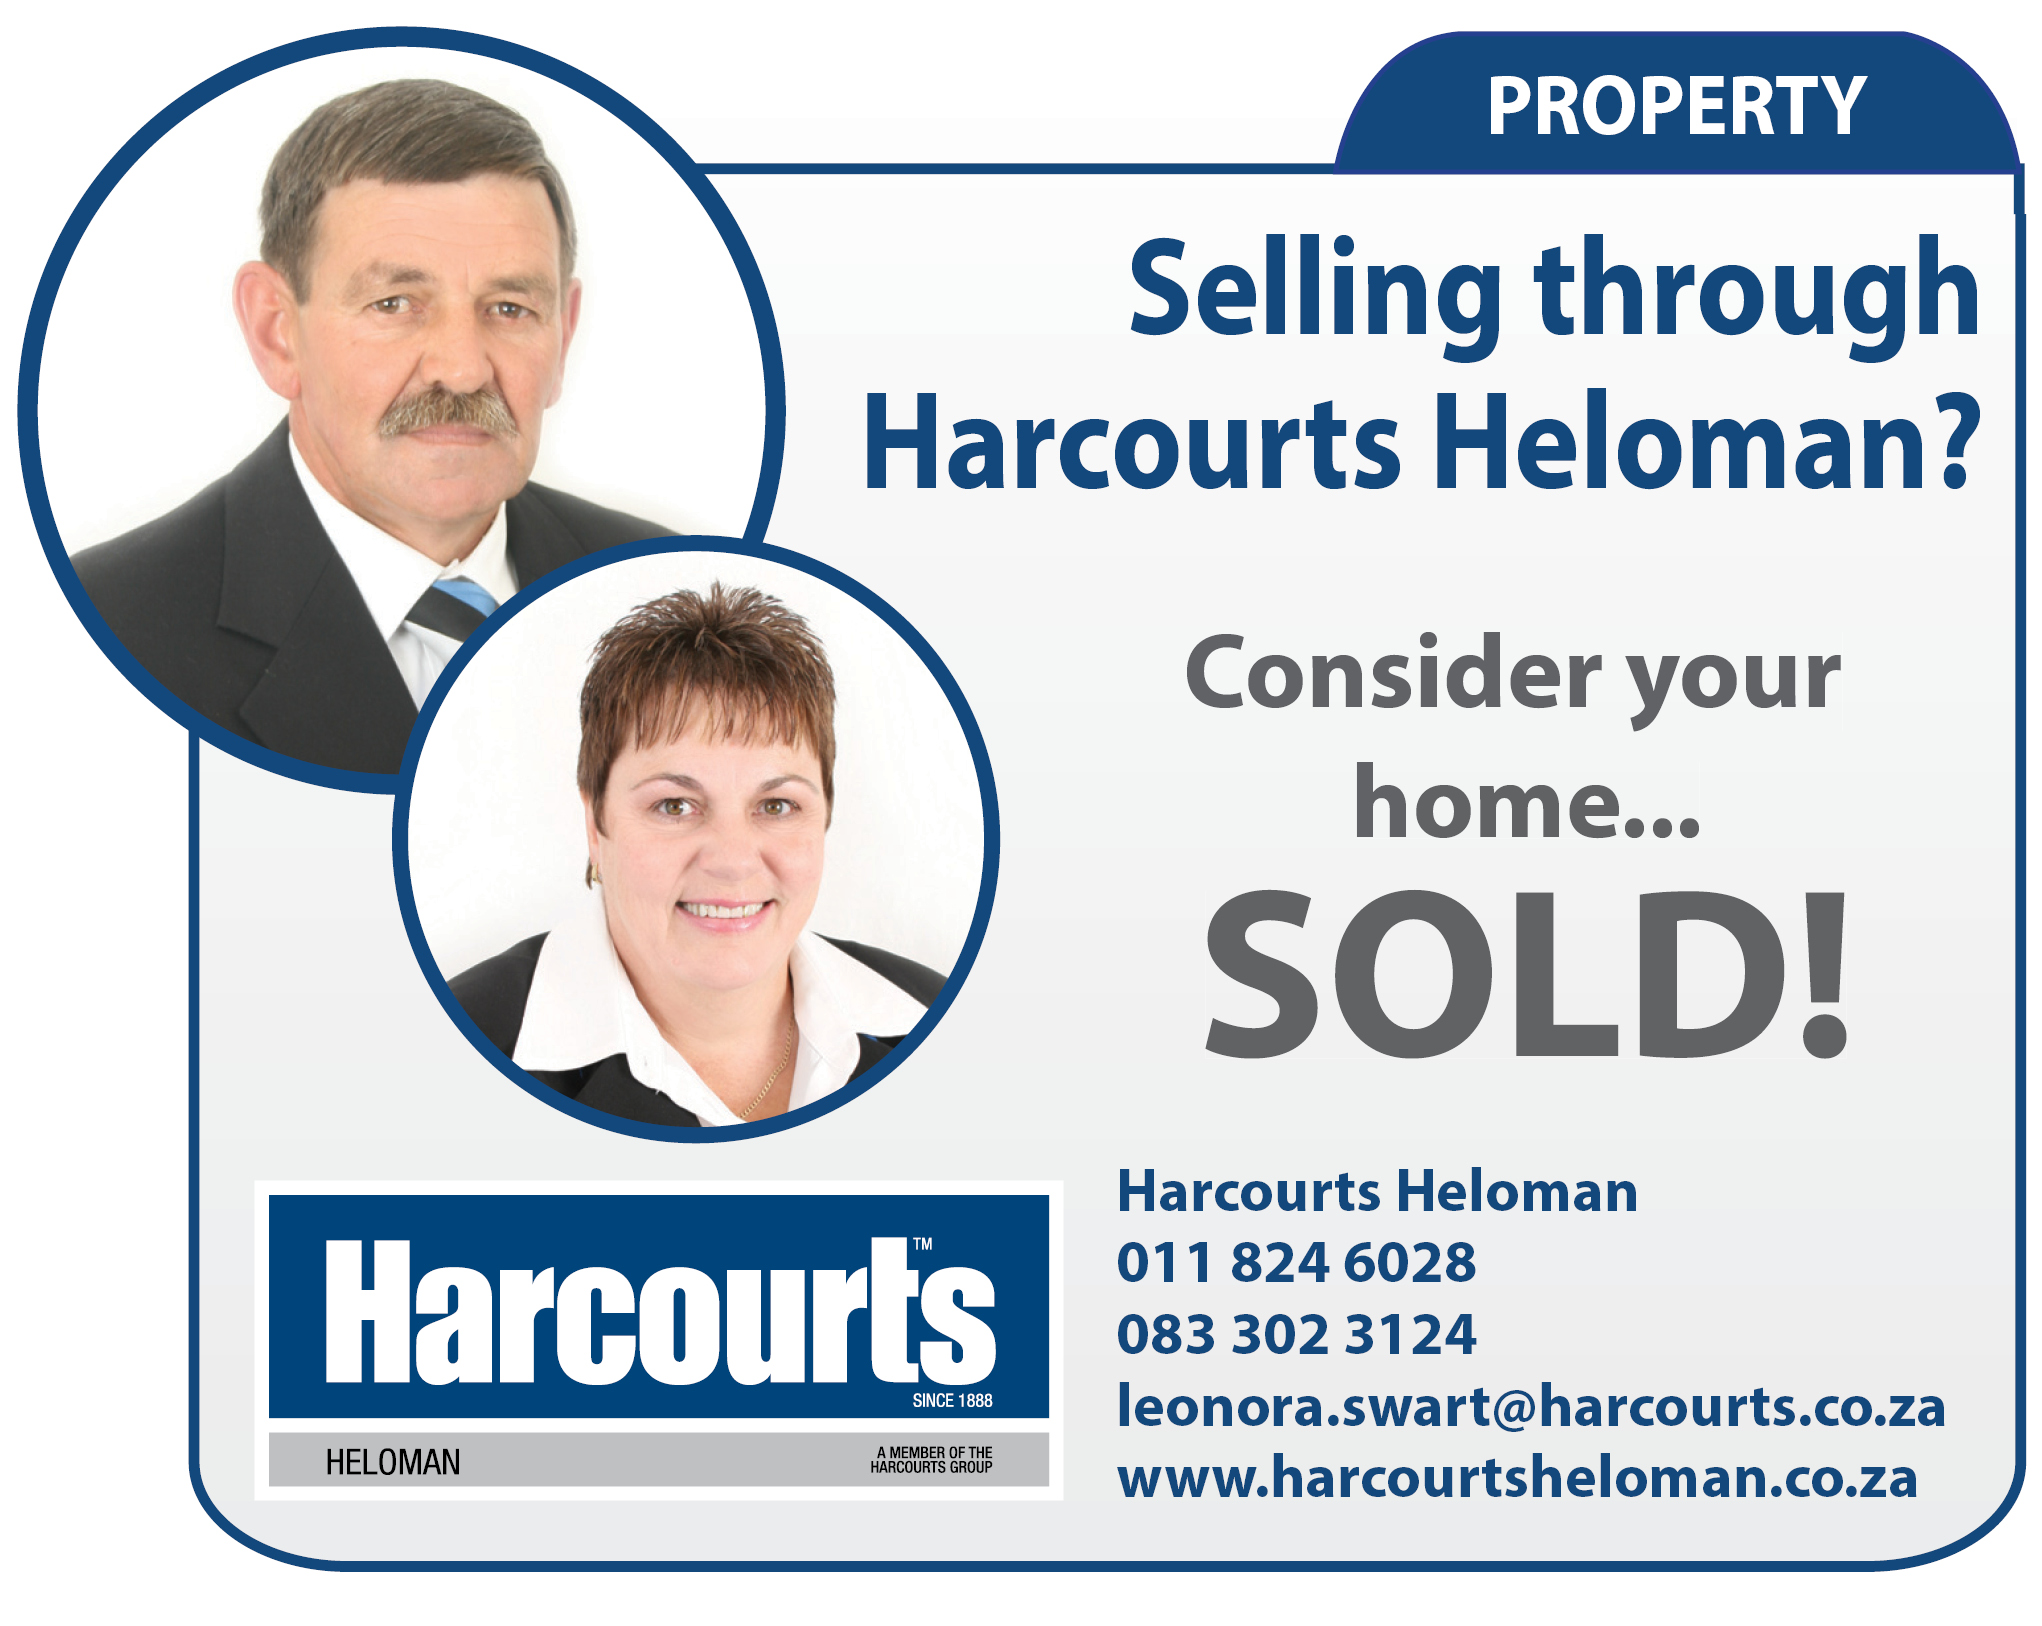 Harcourts Heloman Online Feature